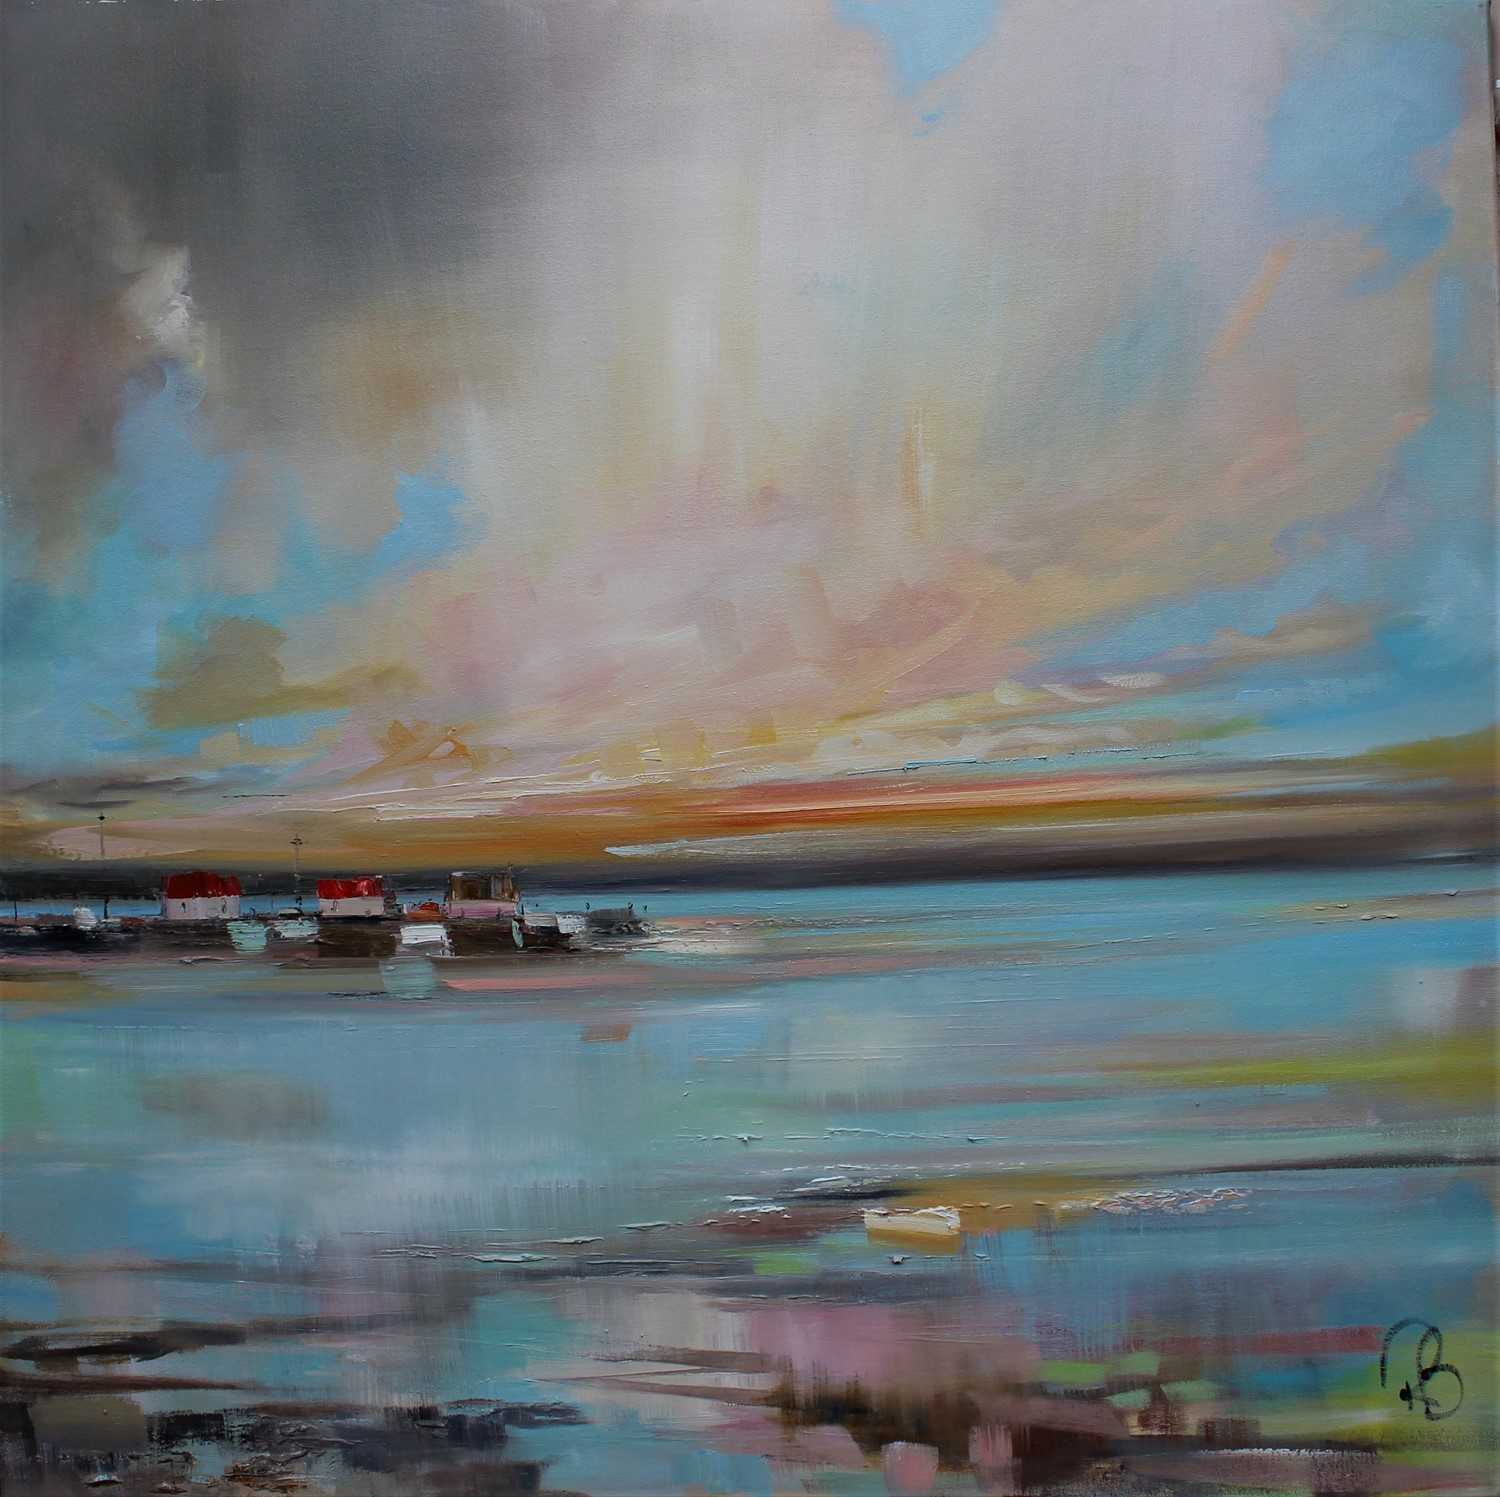 'Ever - Changing Sunset' by artist Rosanne Barr